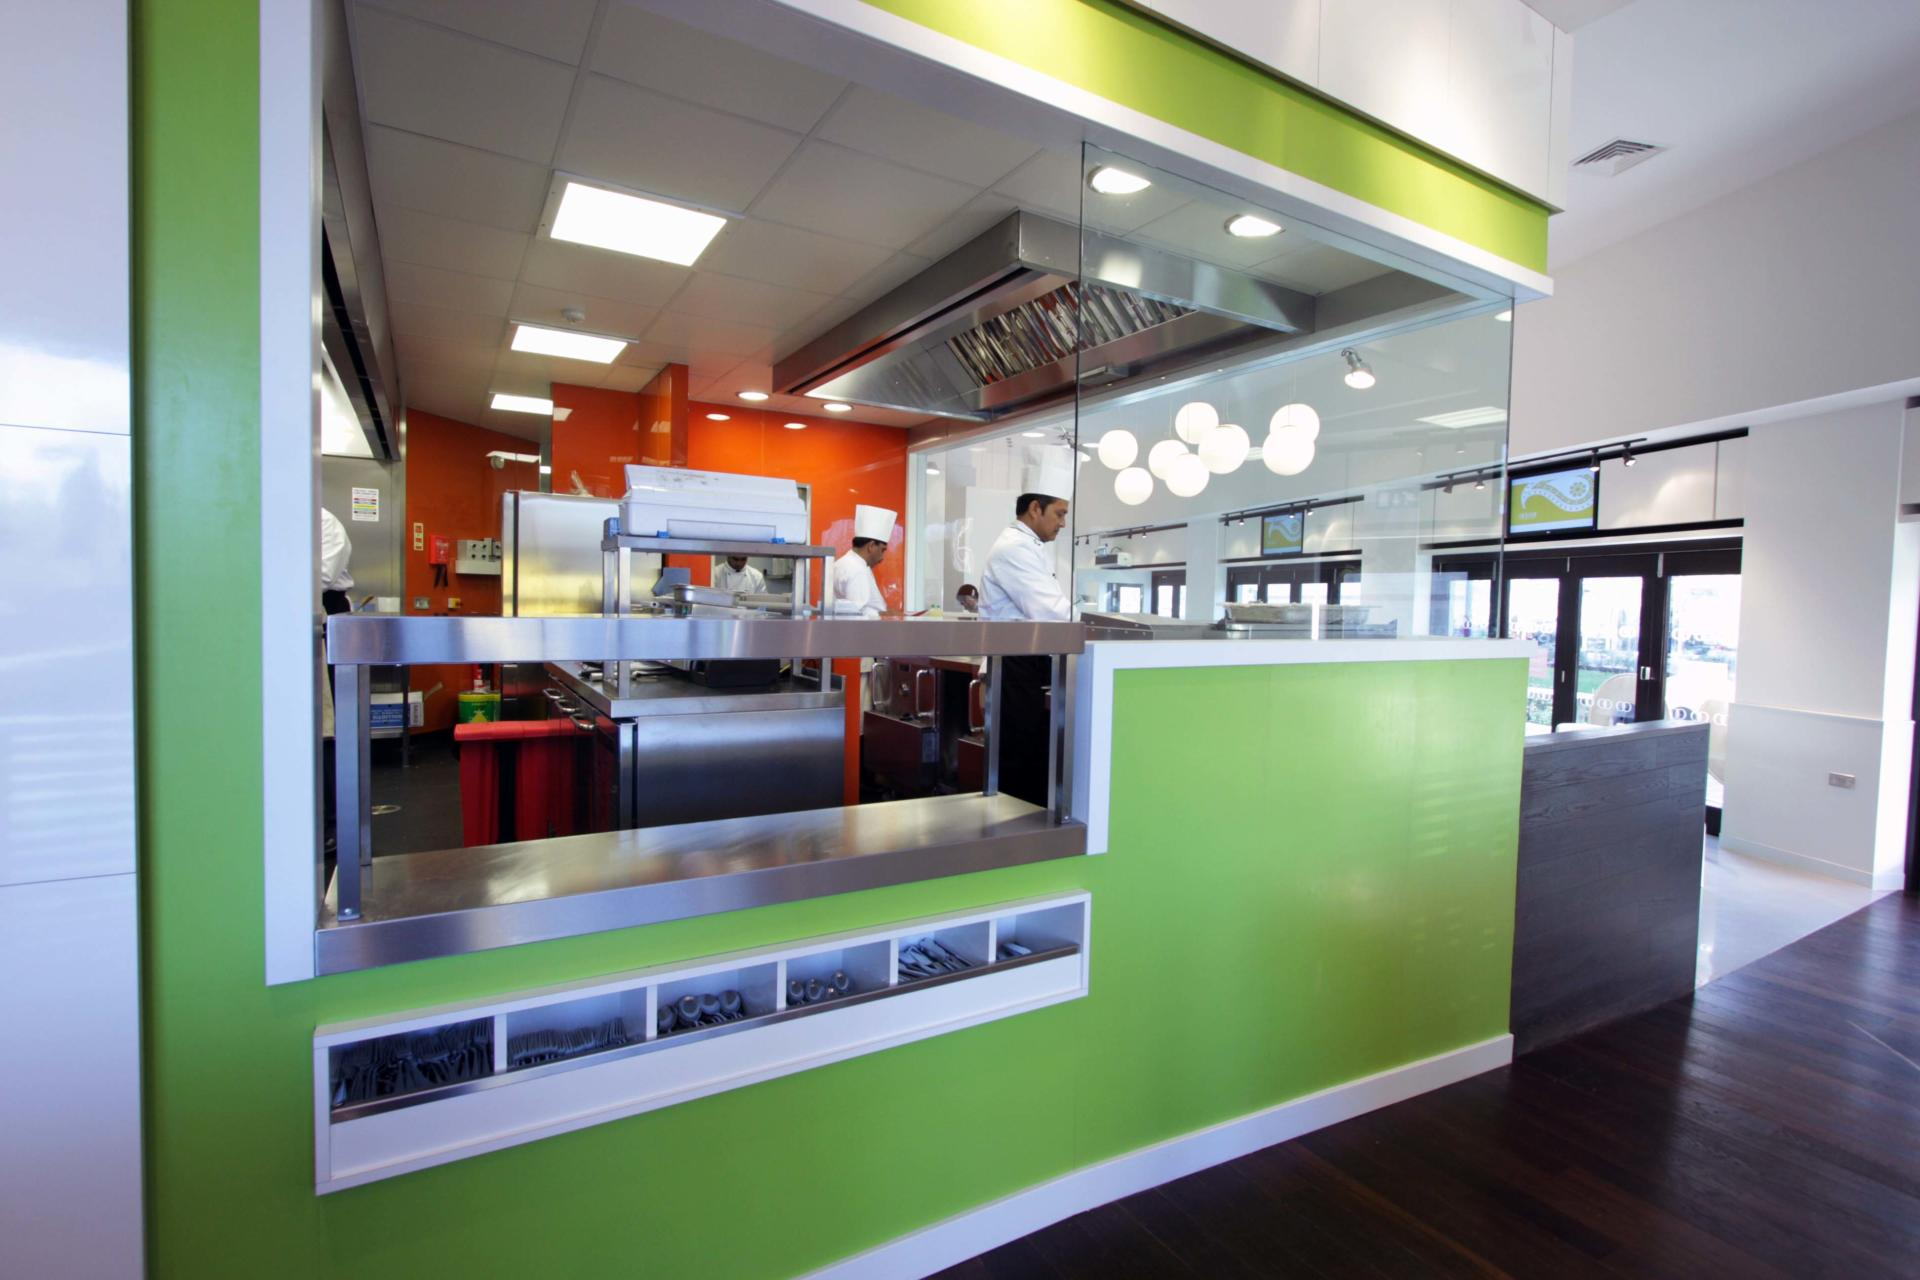 Oojam-Hemel-Hempstead-Indian-restaurant-and-kitchenFabrication-Stainless-Steel-Commercial-Kitchen-spacecatering_4